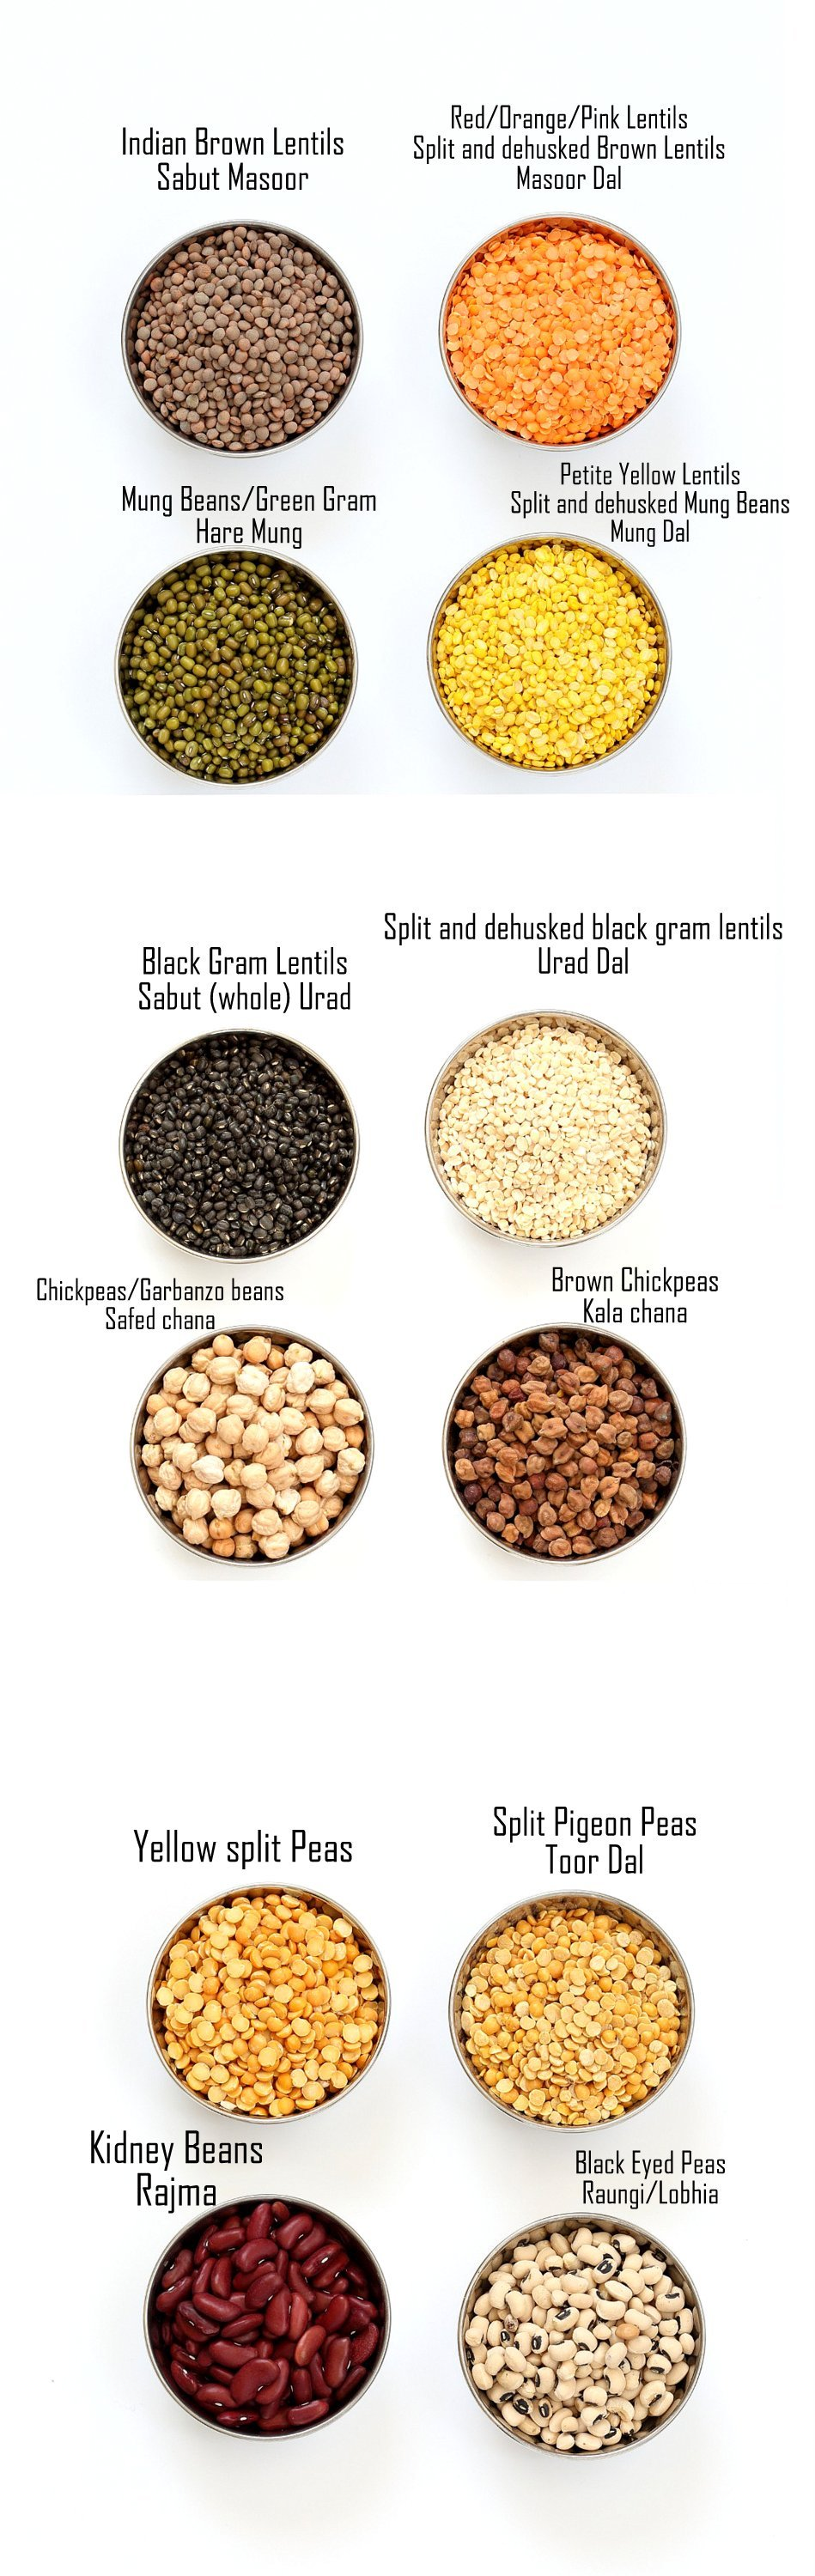 Indian Dals Names, Dals and Legumes - Indian Dal Names in English and Hindi with pictures. Split Chickpeas (Chana Dal), Red Lentils (Masoor Dal), Petite Yellow Lentils (Mung Dal) and more. Glossary of Lentils, legumes, beans. | Vegan Richa| Vegan Richa